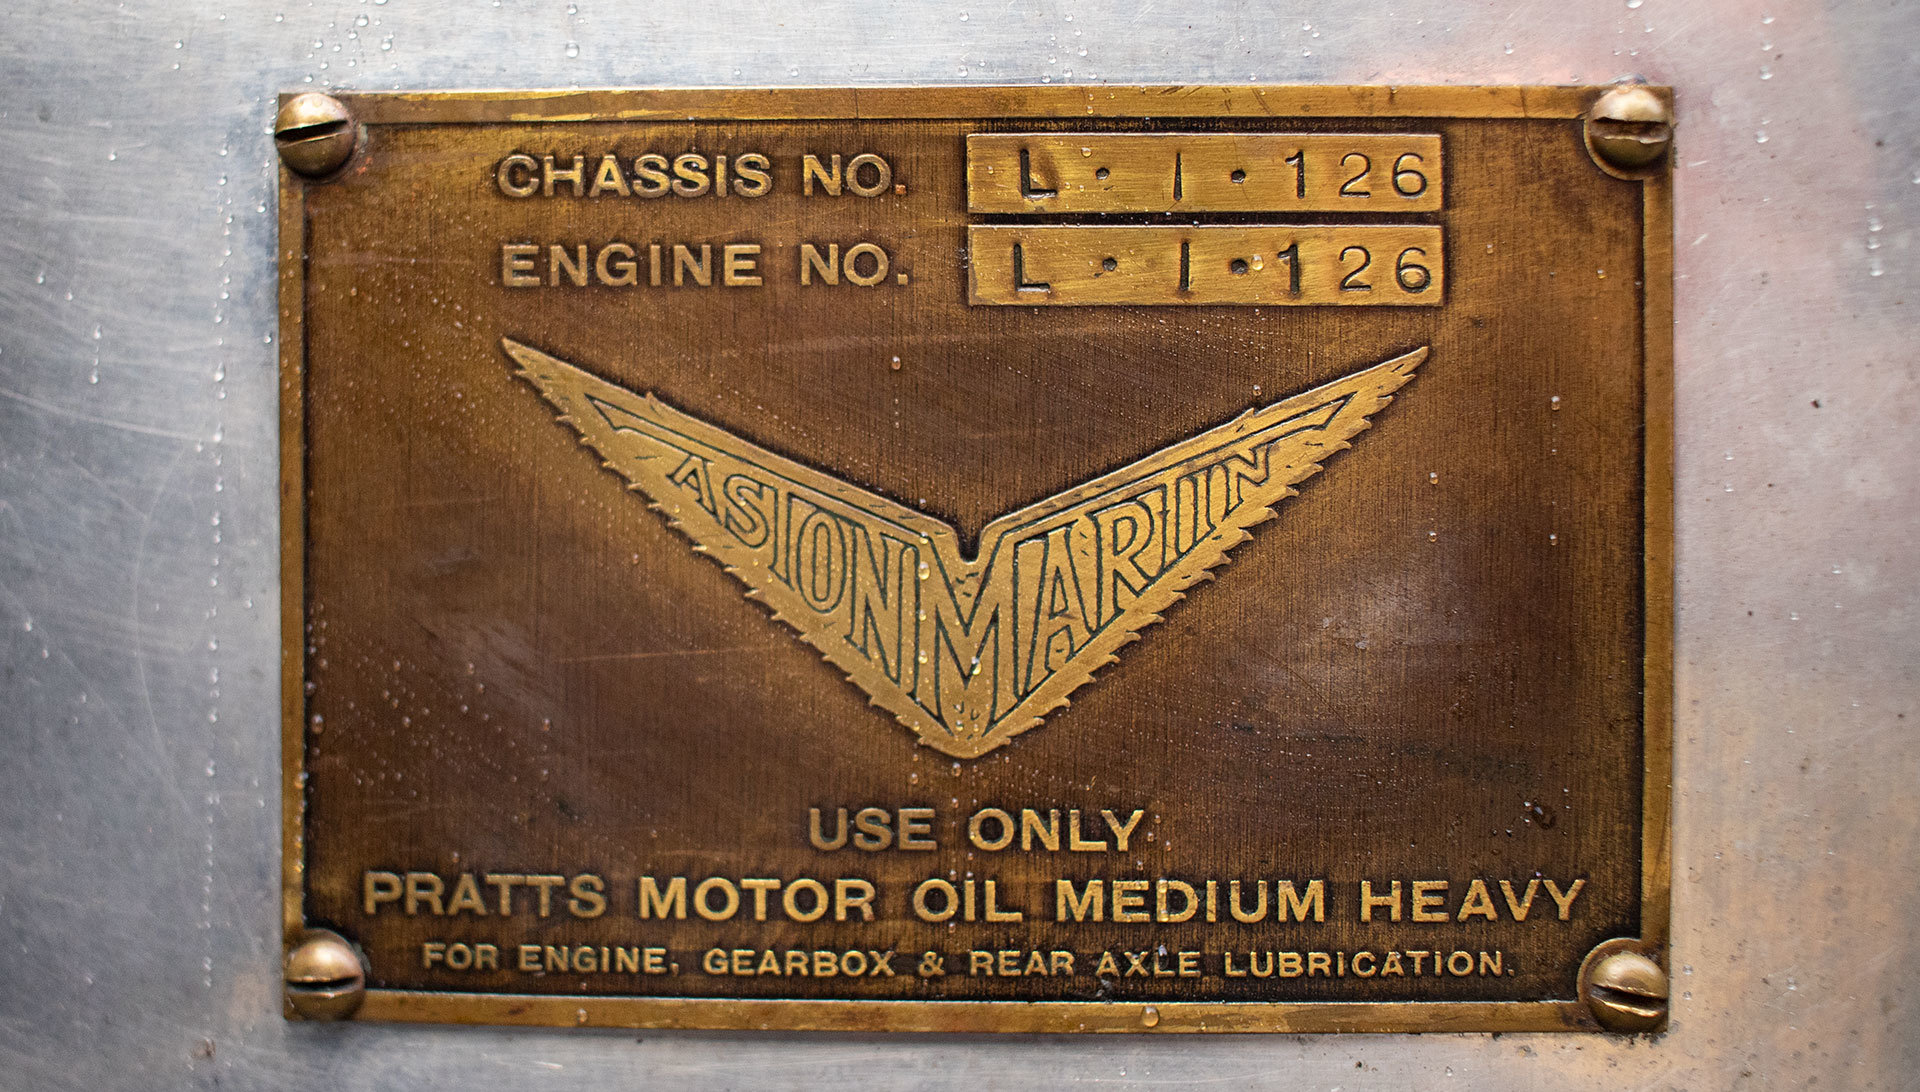 1931 ASTON MARTIN INTERNATIONAL LE MANS – BROOKLANDS HISTORY For Sale (picture 12 of 18)